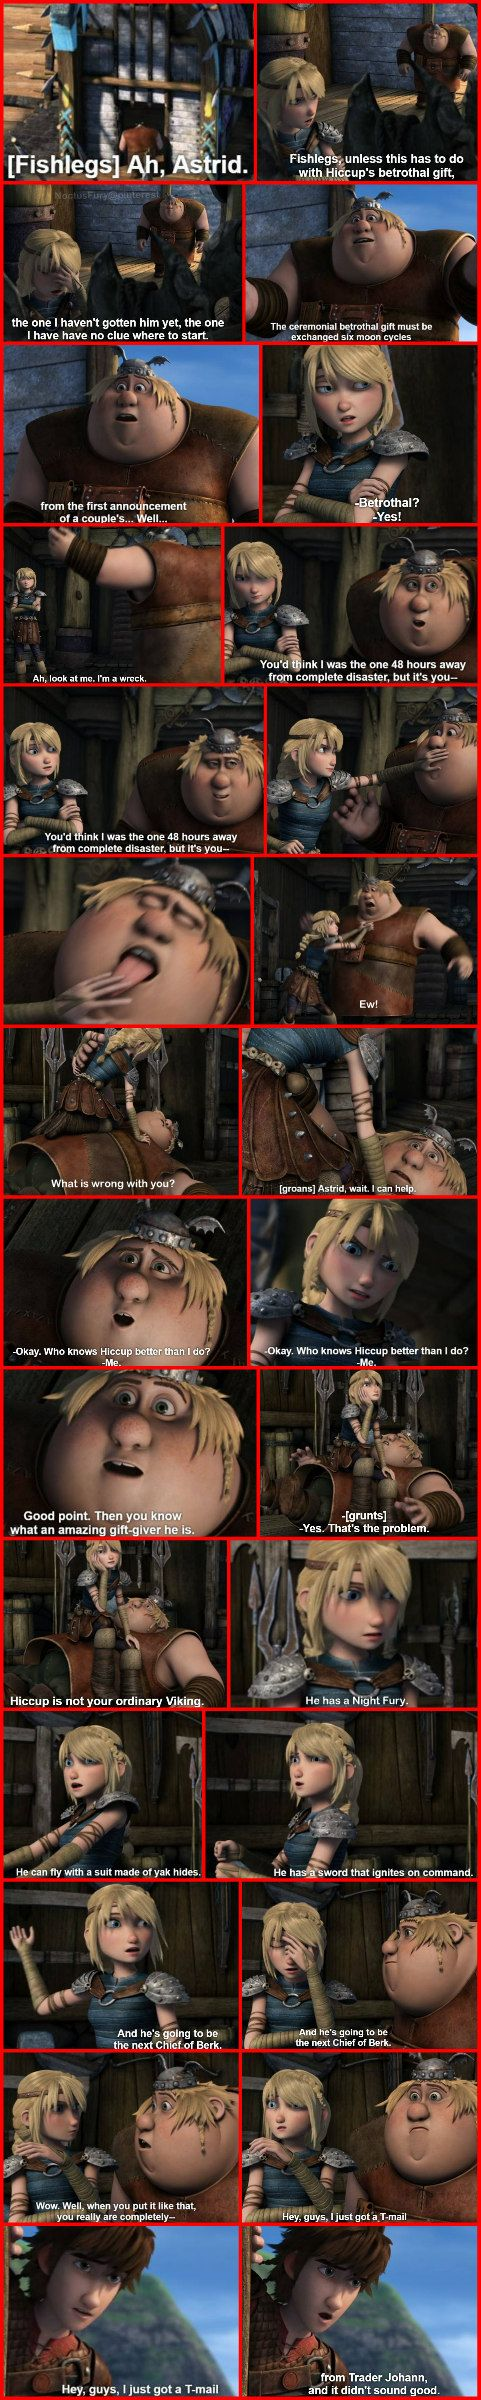 """Full scene of Fishlegs and Astrid talking about finding a betrothal gift for Hiccup in the """"Sandbusted"""" episode."""